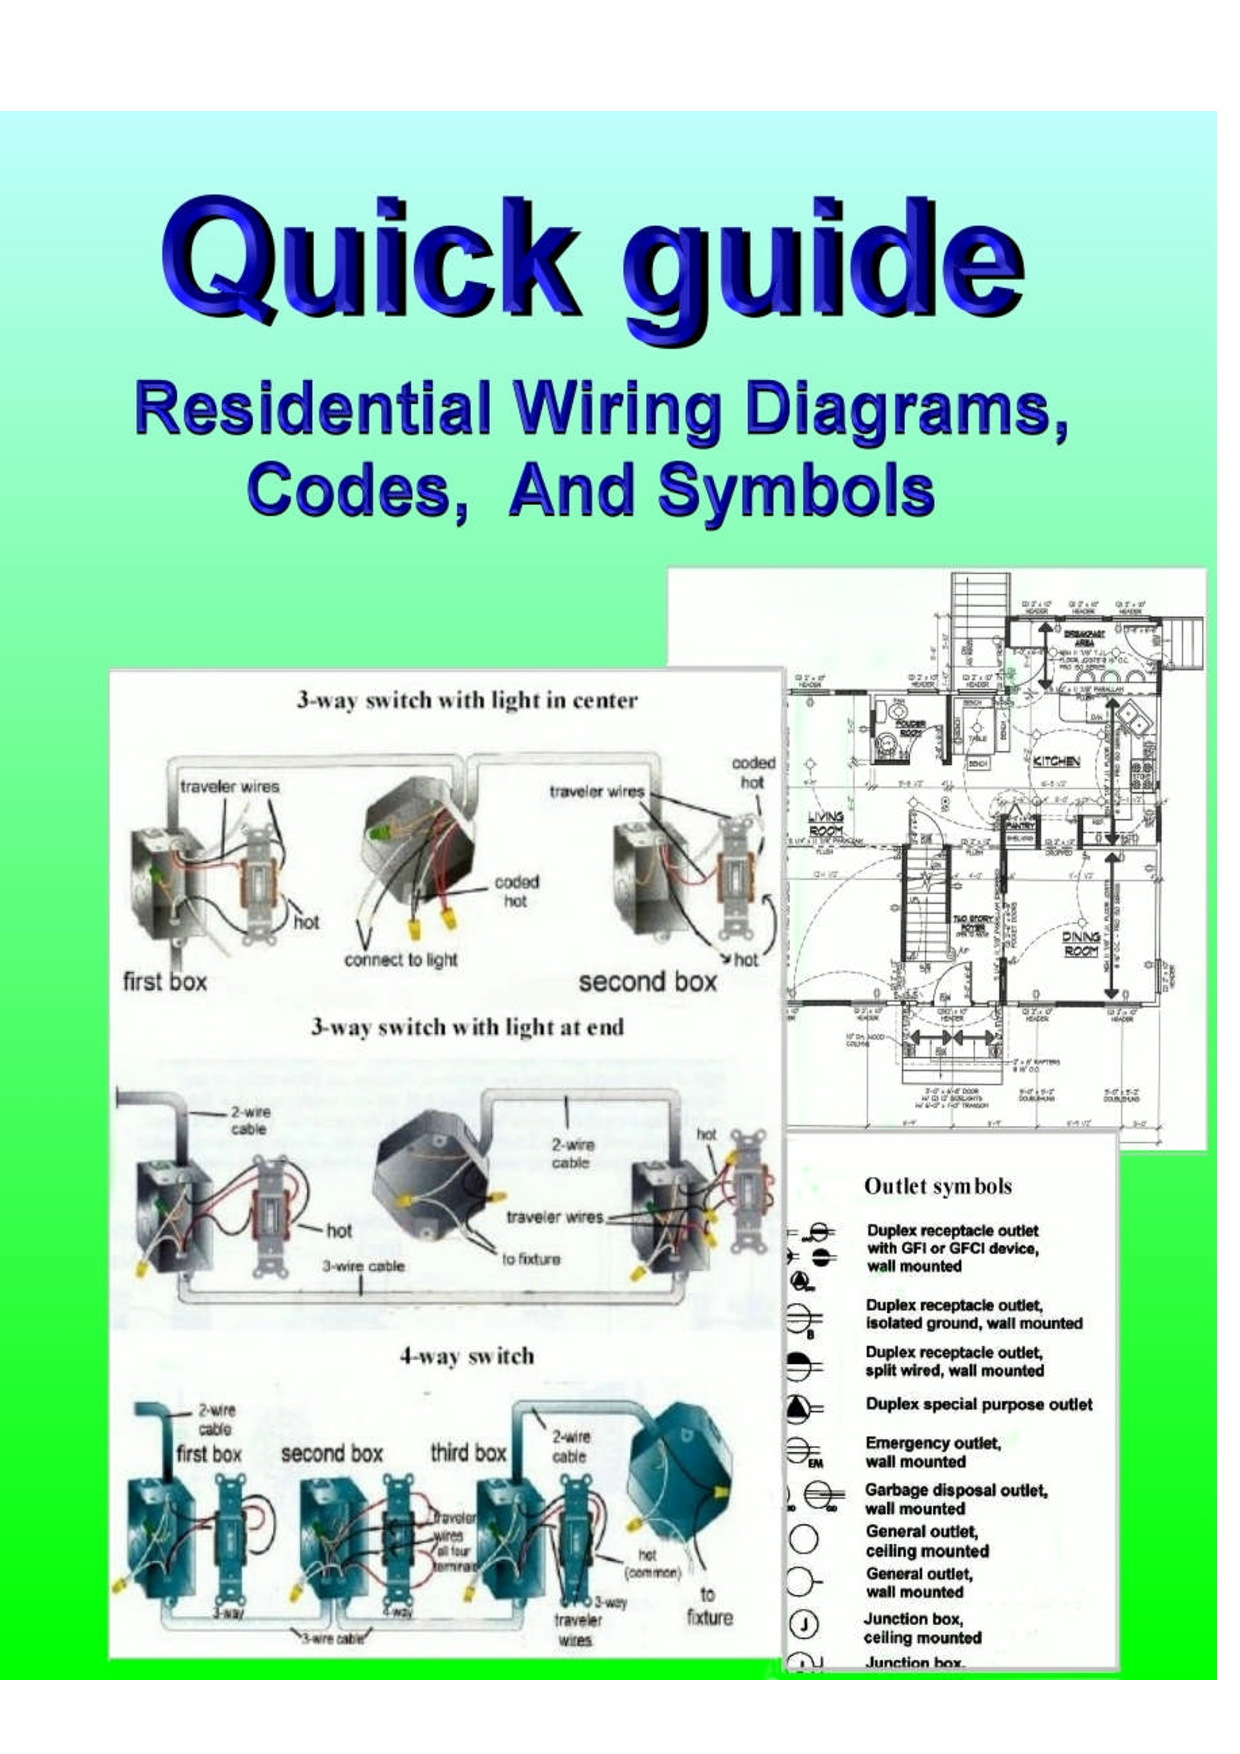 medium resolution of home electrical wiring diagrams pdf download legal documents 39 pages with many diagrams and illustrations a step by step home wiring guide with diagrams